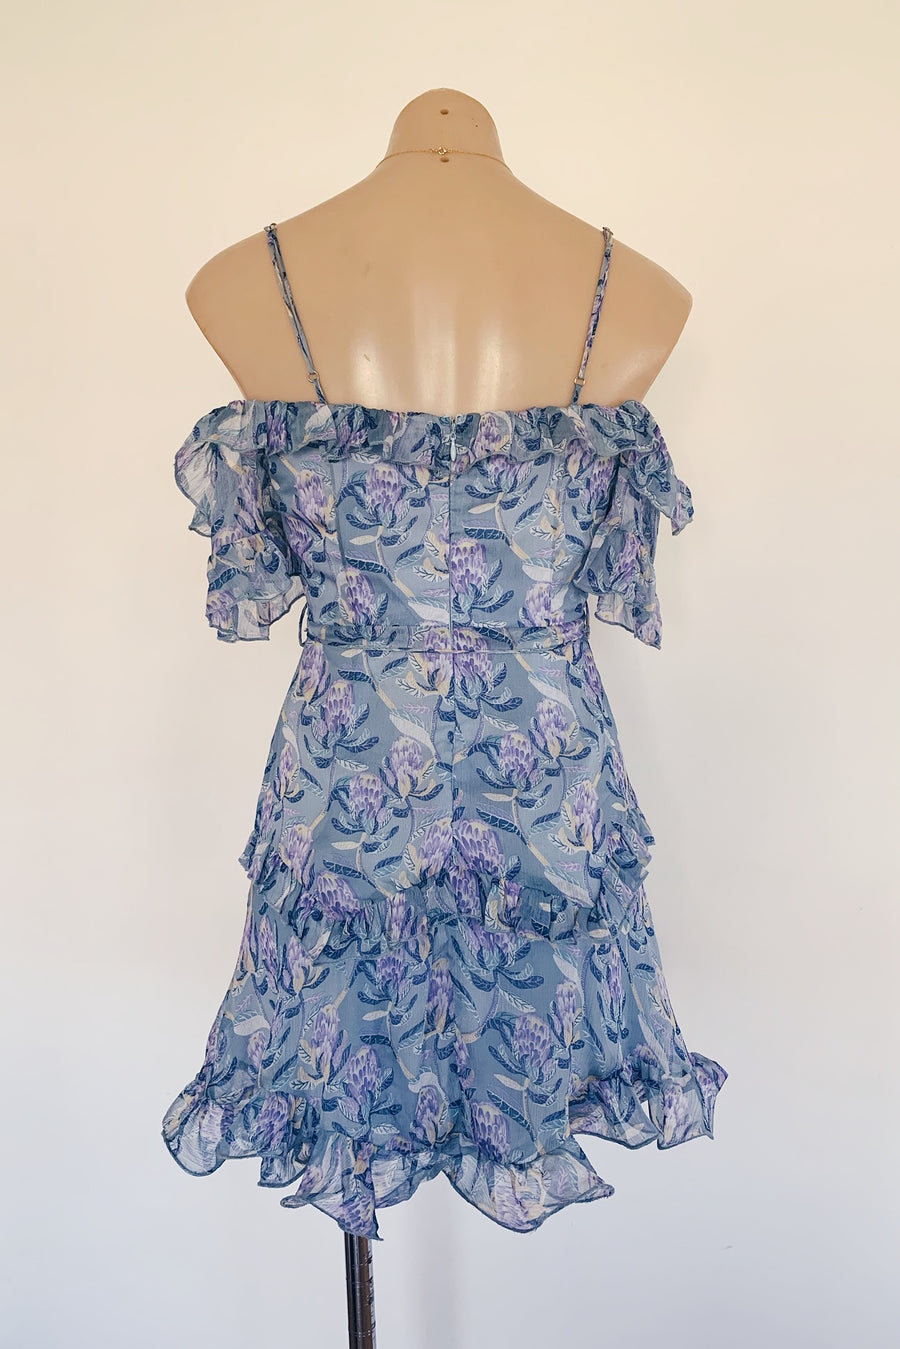 blue floral dress with ruffles and cut out shoulders